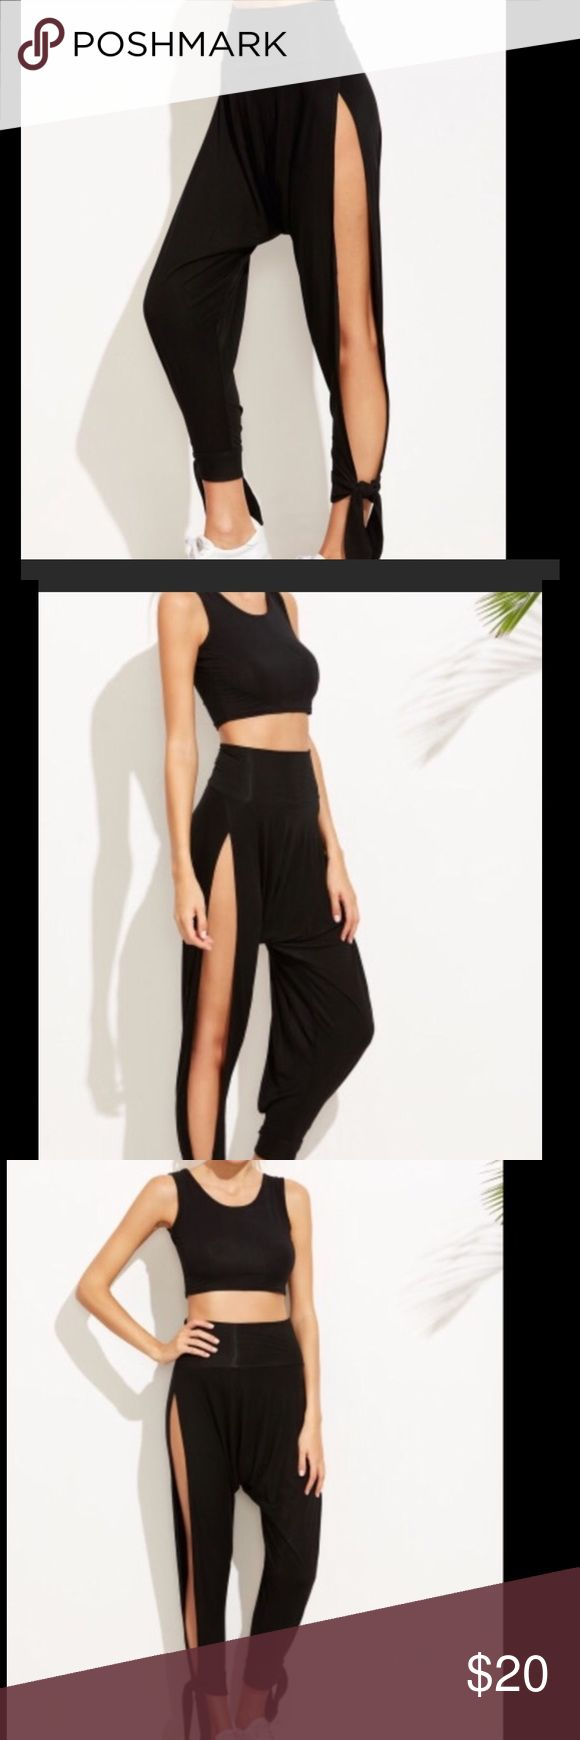 S-M-L Sexy Side Split Harlem Pants A wide waist and Elastic .  Made of Rayon material. Pants